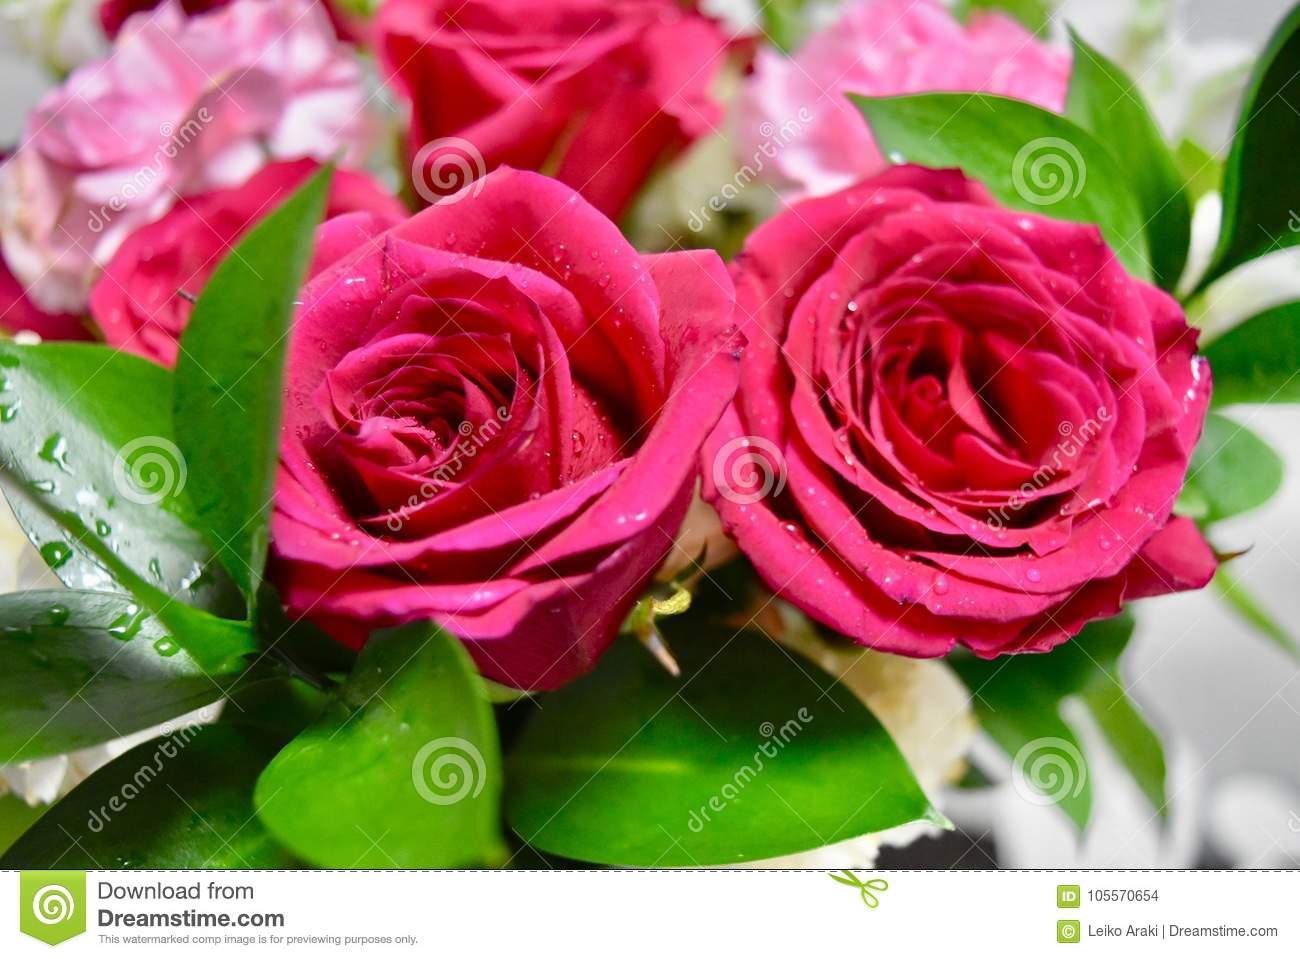 Flowers Two Colors Red And White Roses Stock Photo - Image of white ...